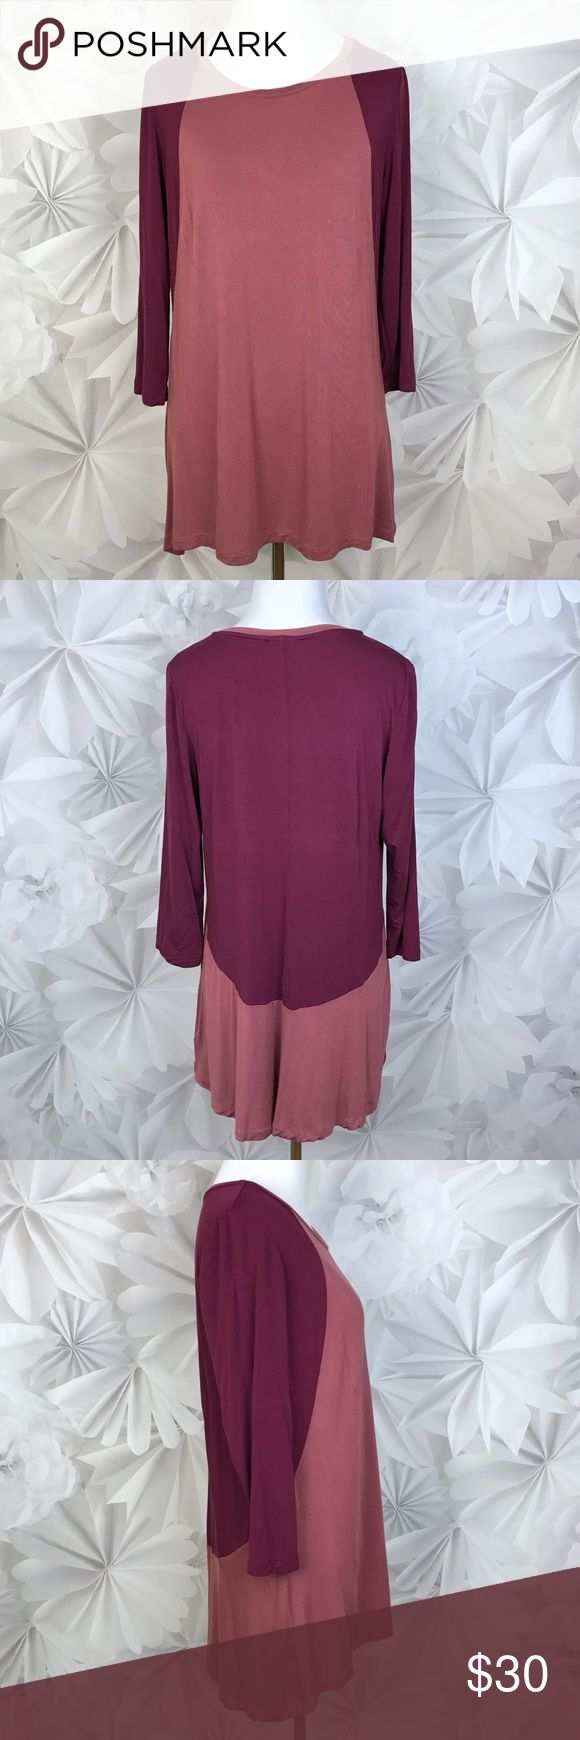 "[LOGO] Lori Goldstein Color Block 3/4 Sleeve Top M Super soft color blocked 3/4 sleeve top. Sporty and Chic. Perfect with skinny jeans or leggings. A great color combo for Fall.   🔹Fabric: 95% Rayon 5% Spandex  🔹Bust: 19"" 🔹Length: 27"" - 30"" 🔹Condition: Excellent pre-owned condition. No flaws.  Measurements taken while lying flat. LOGO by Lori Goldstein Tops Blouses"